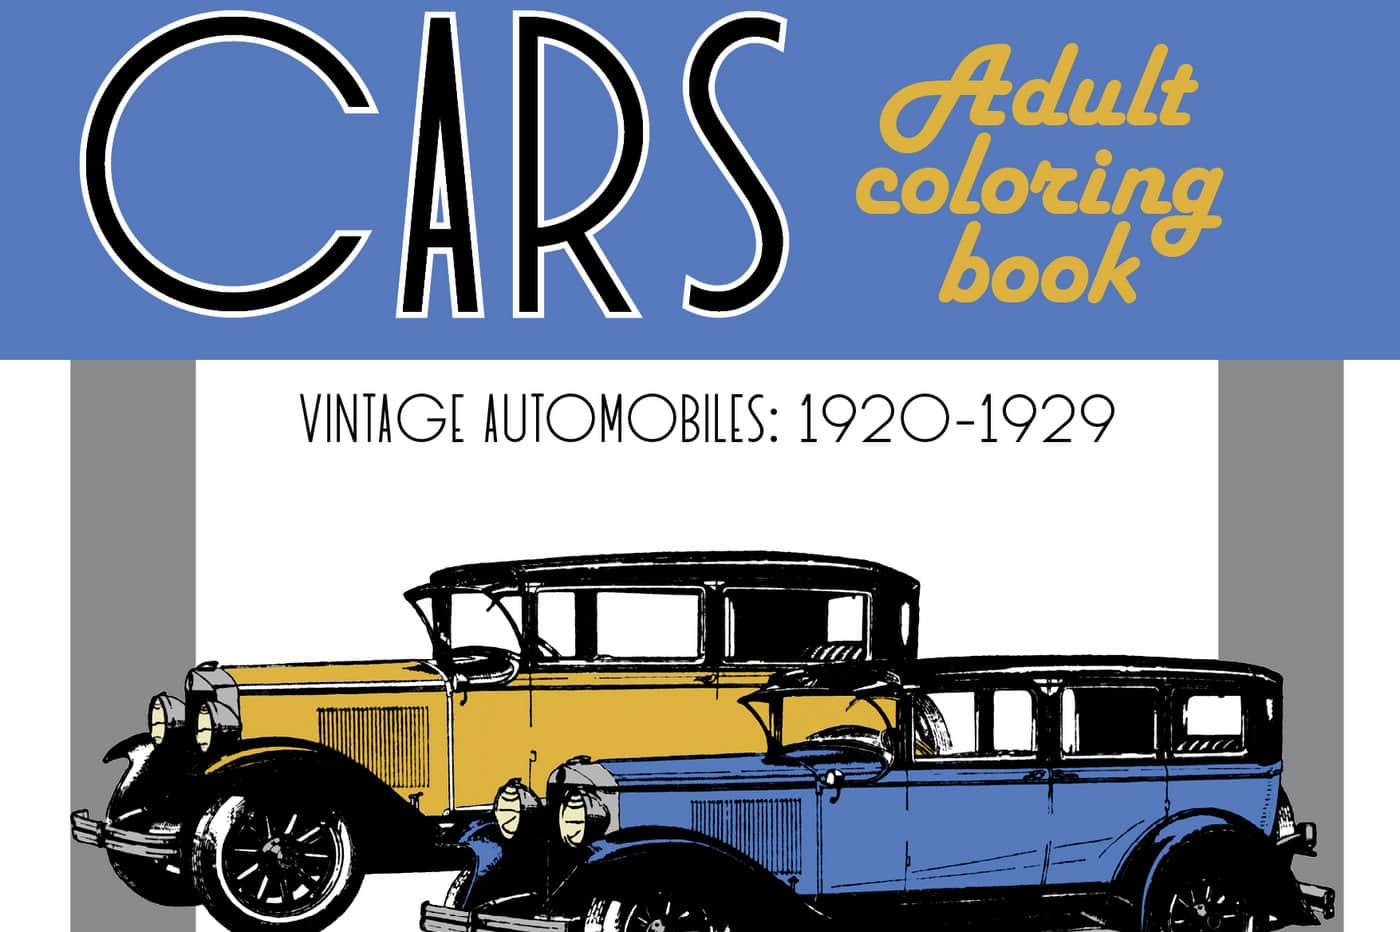 Classic Cars Adult Coloring Book 2 Vintage Automobiles (1920-1929)